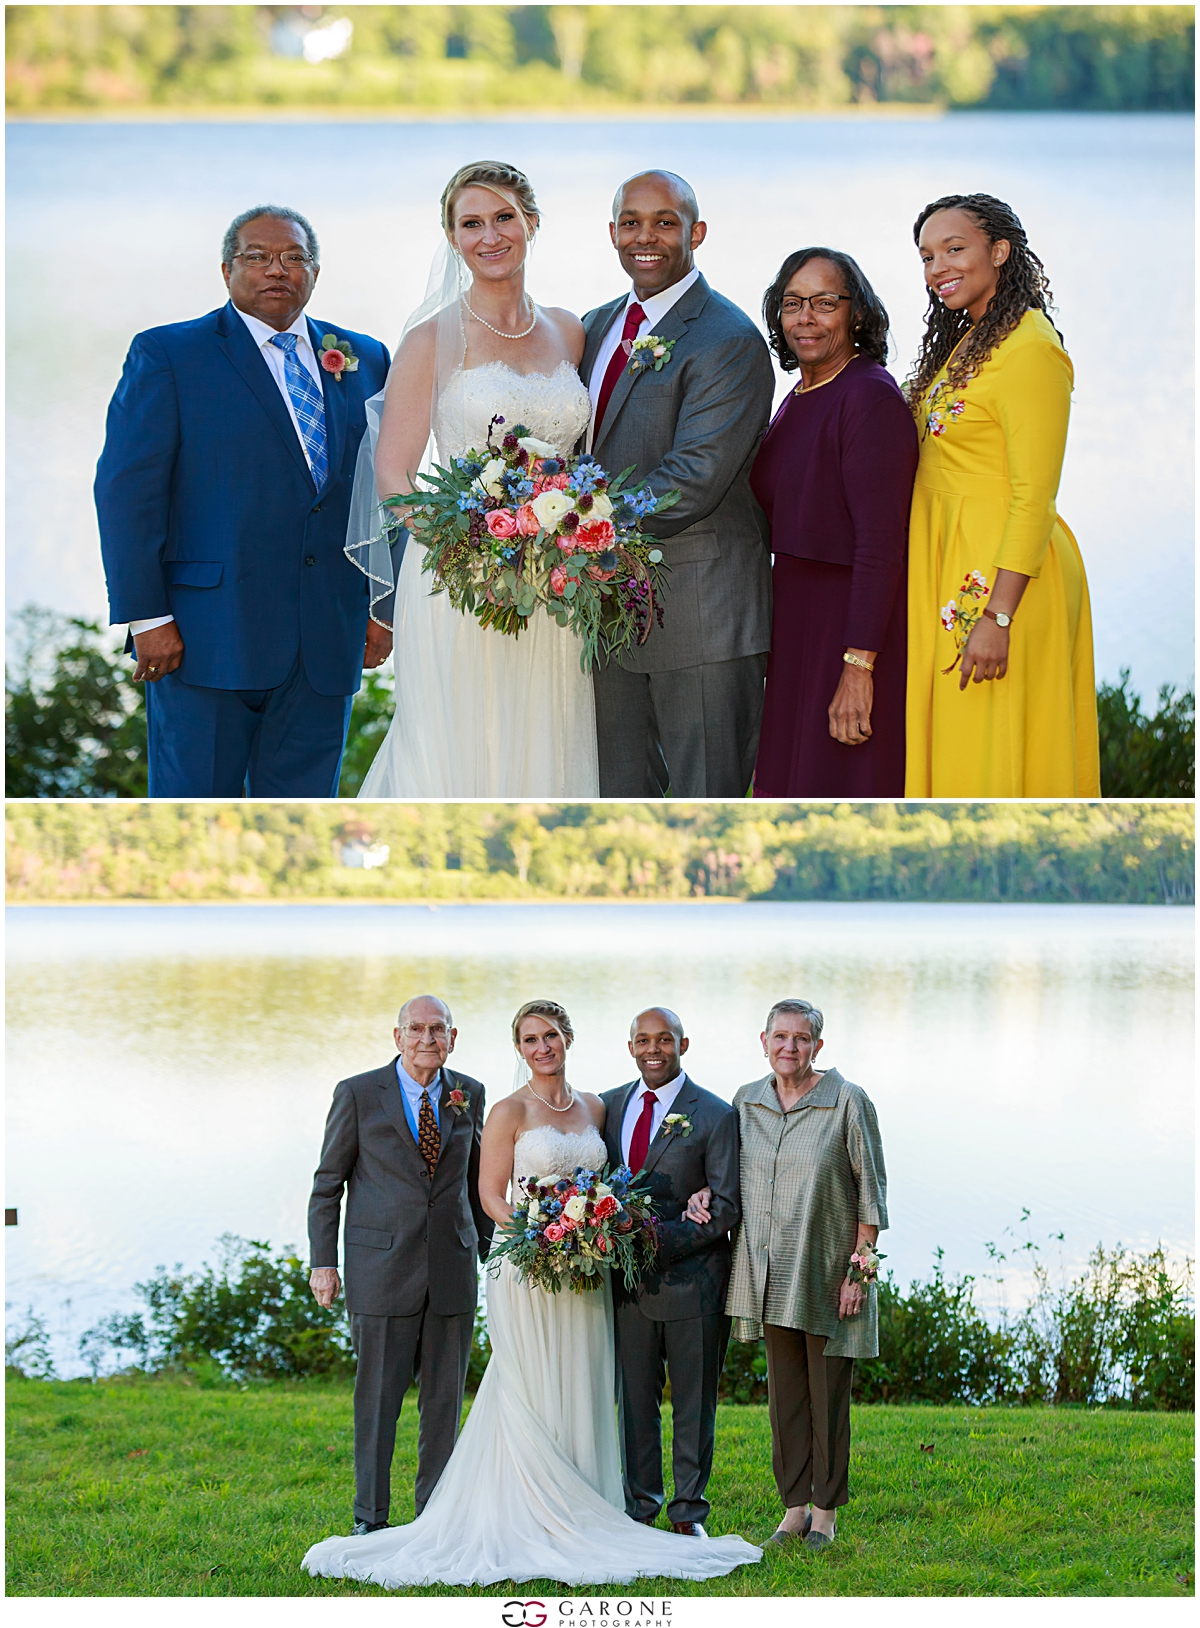 Kate_Matt_Backyard_Lake_Wedding_Garone_Photography_NH_Wedding_0022.jpg